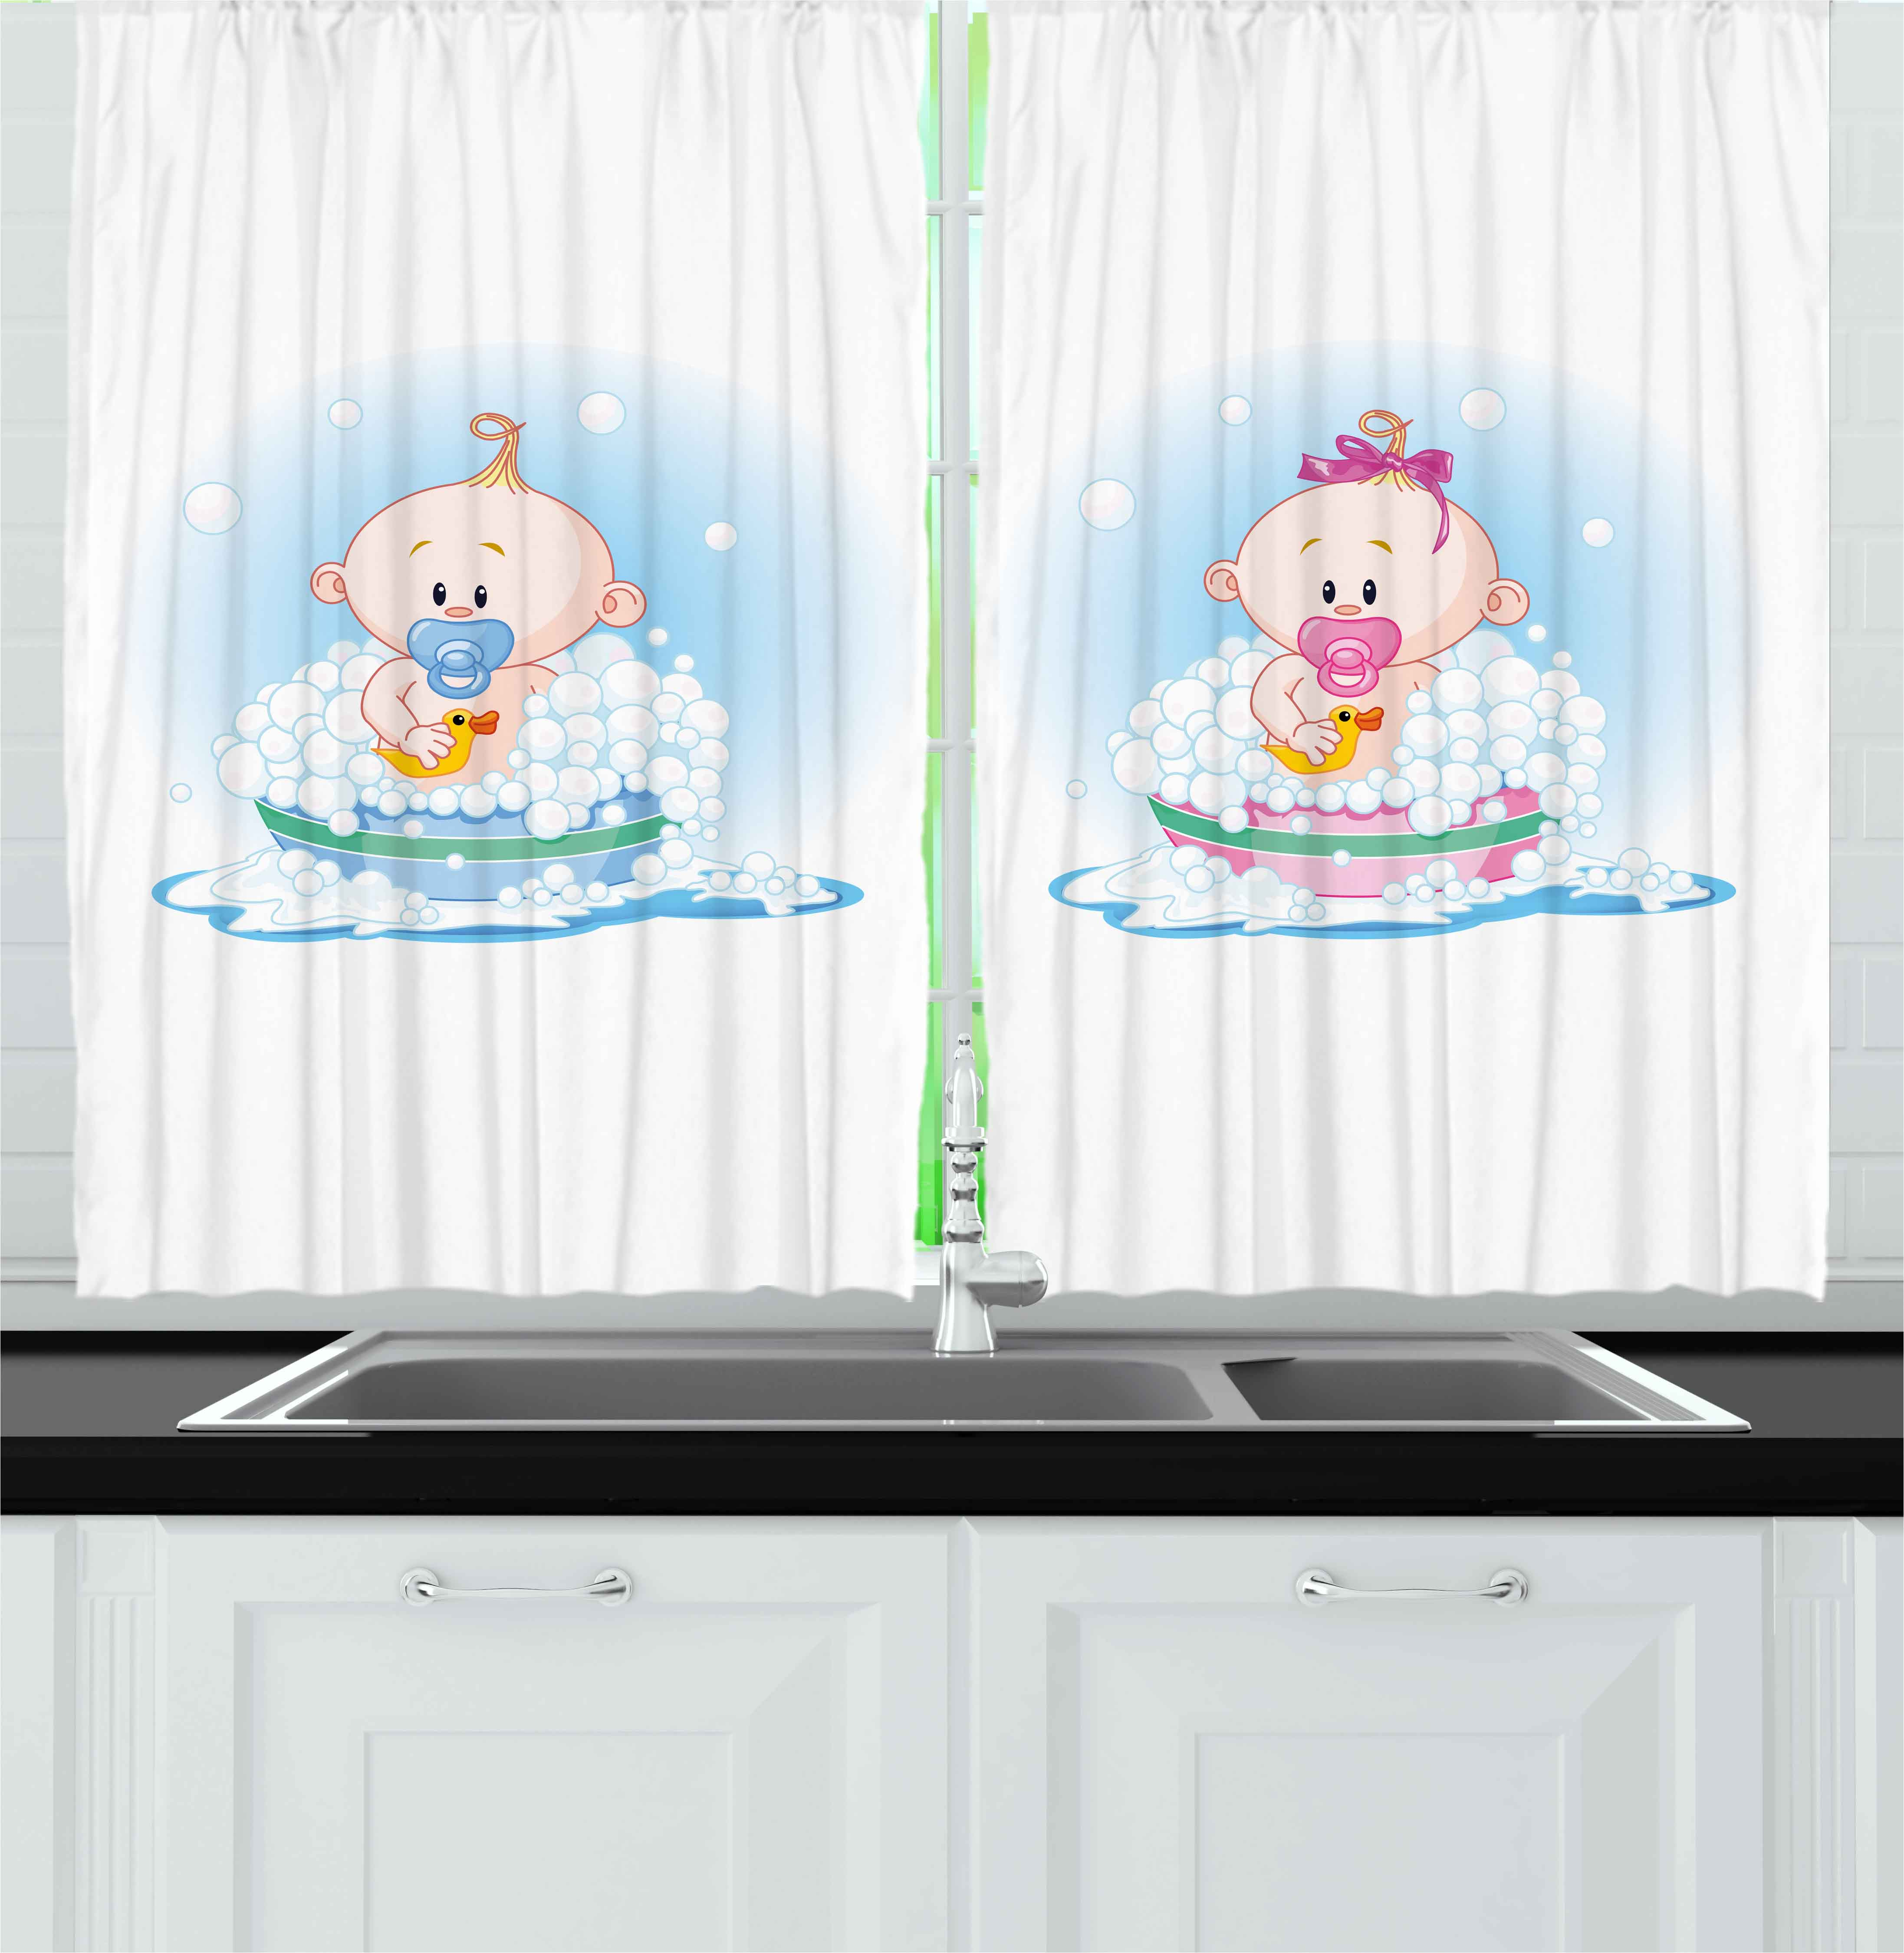 Gender Reveal Curtains 2 Panels Set, Cute Girl and Boy Babies in Bath with Bubbles Duck Toddler Picture Print, Window Drapes for Living Room Bedroom, 55W X 39L Inches, Multicolor, by Ambesonne